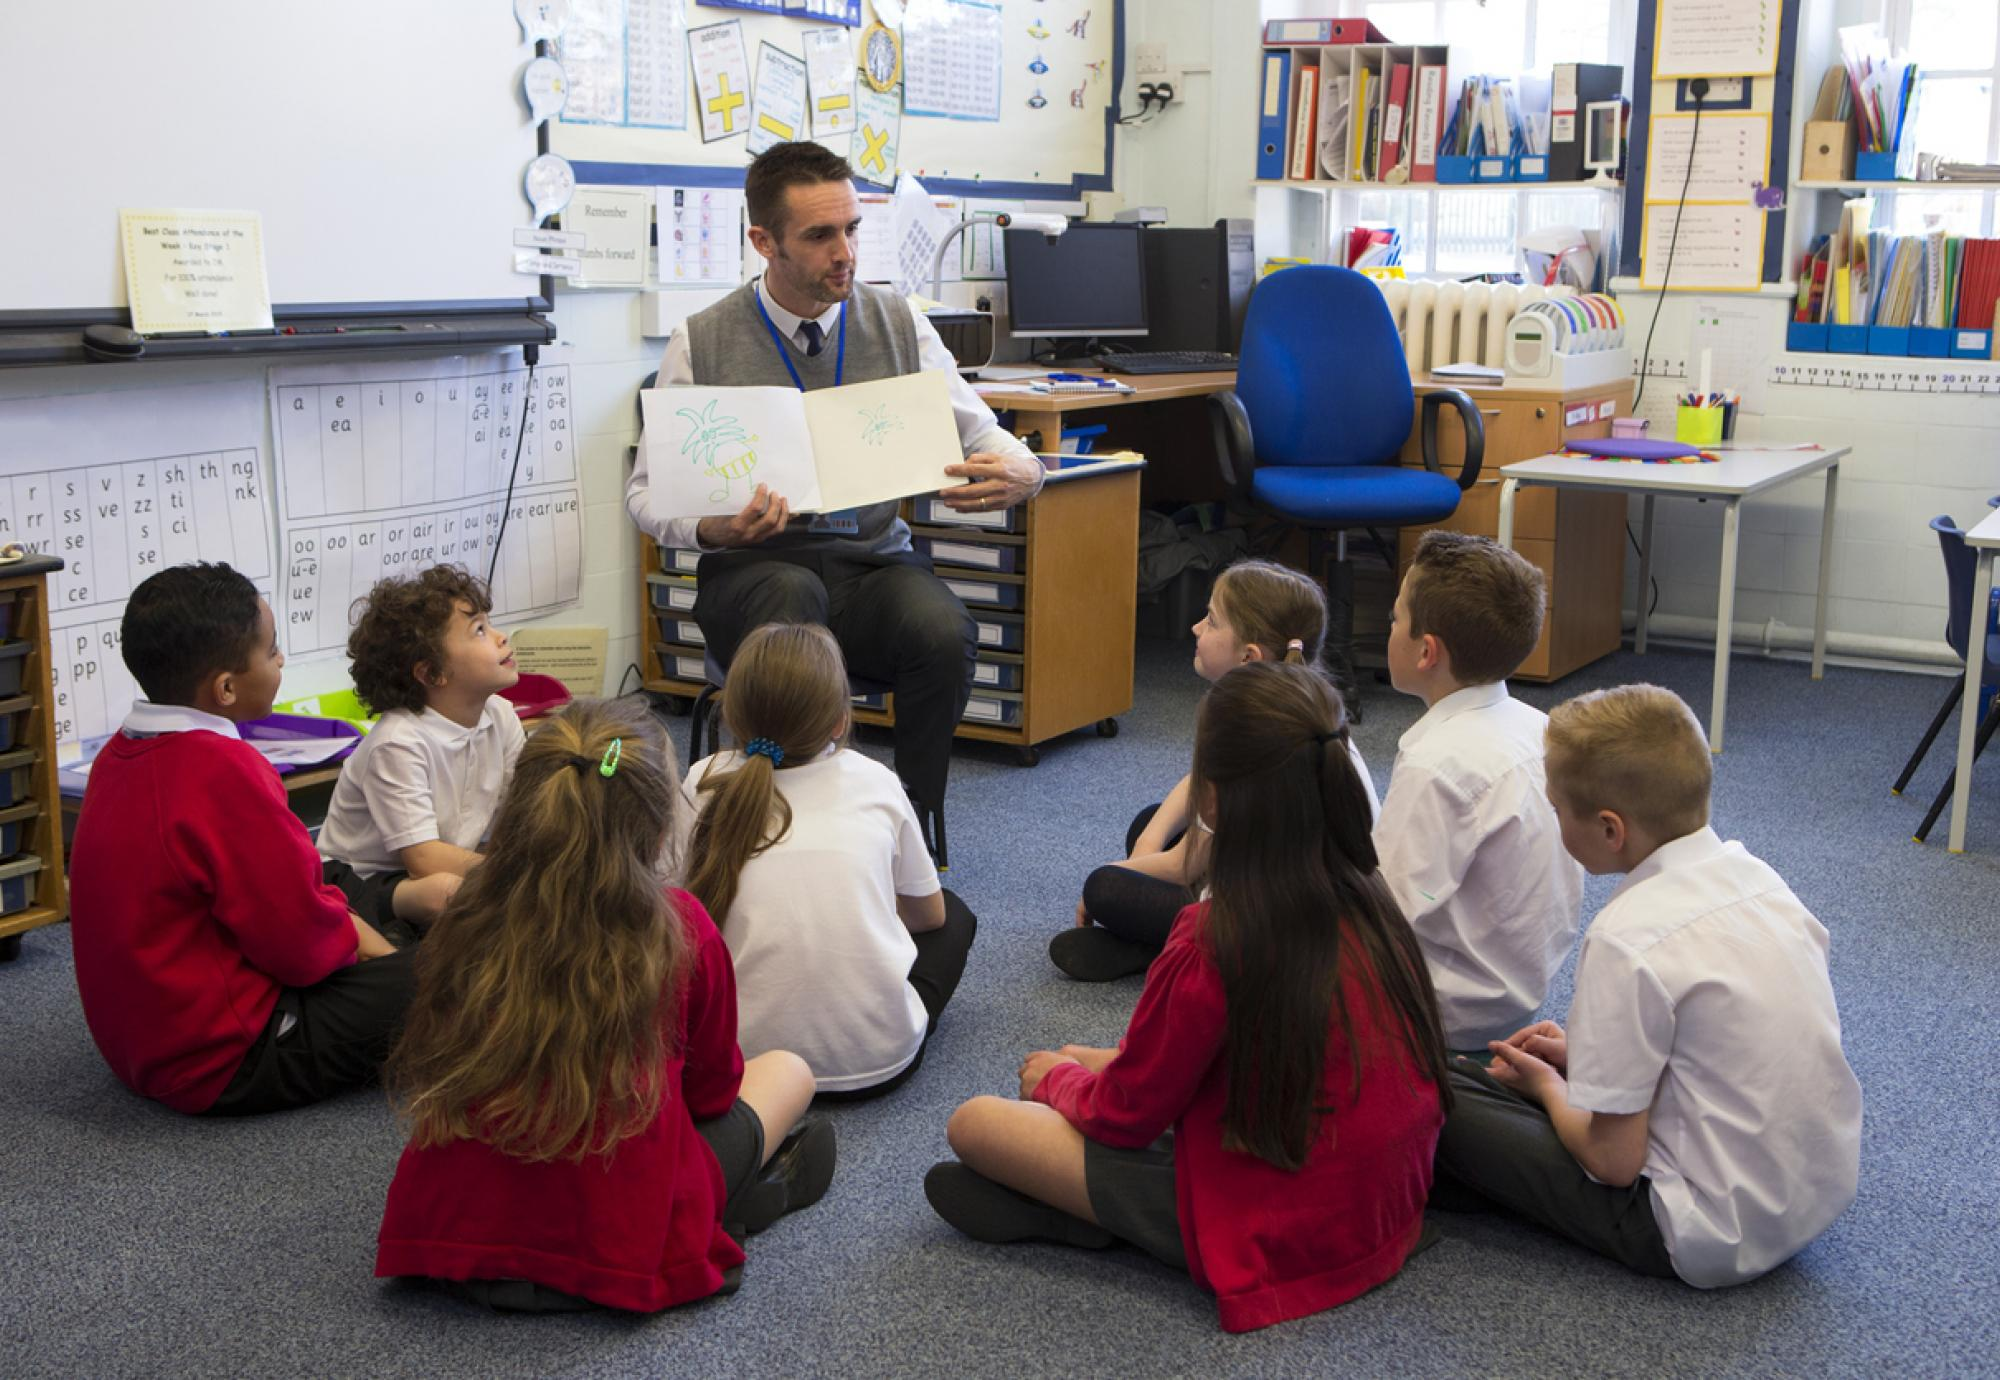 Children sit with teacher as he reads a story.